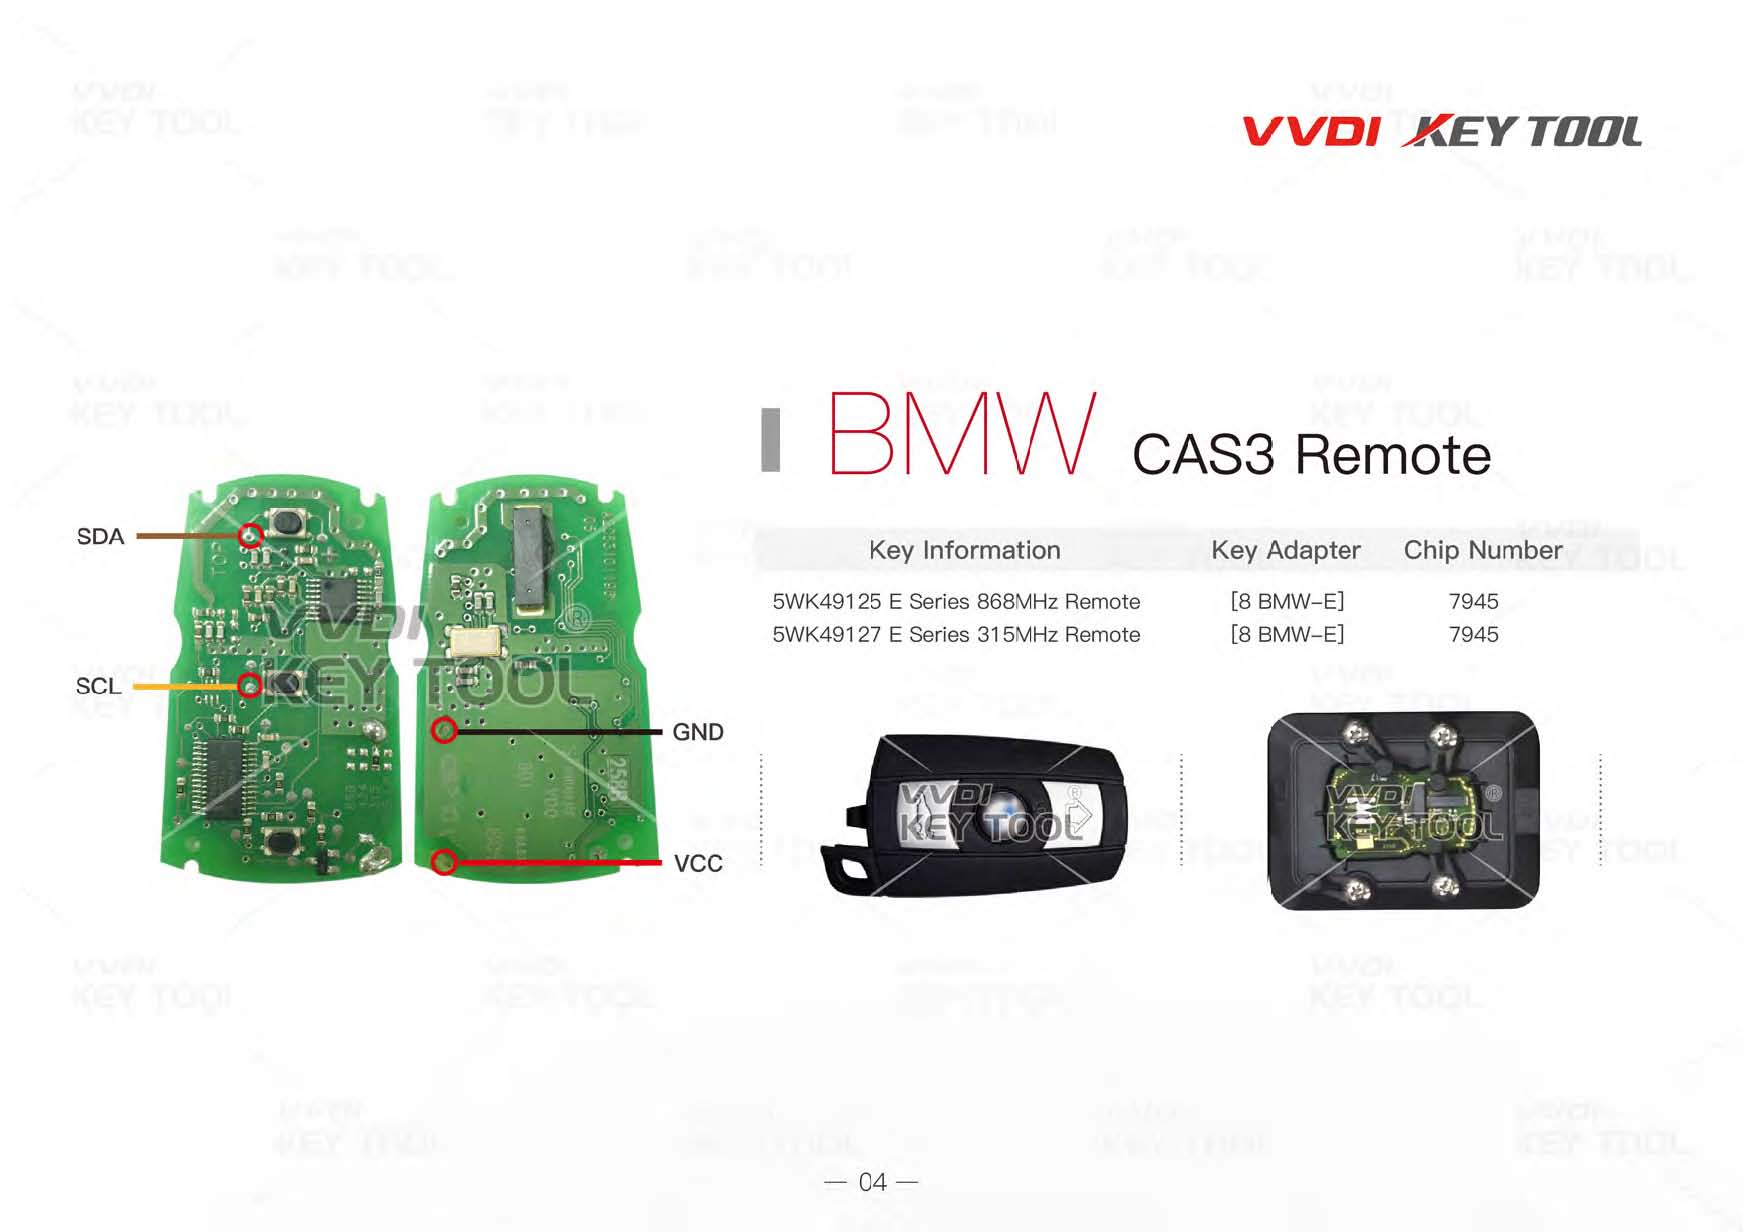 vvdi-key-tool-renew-diagram-04